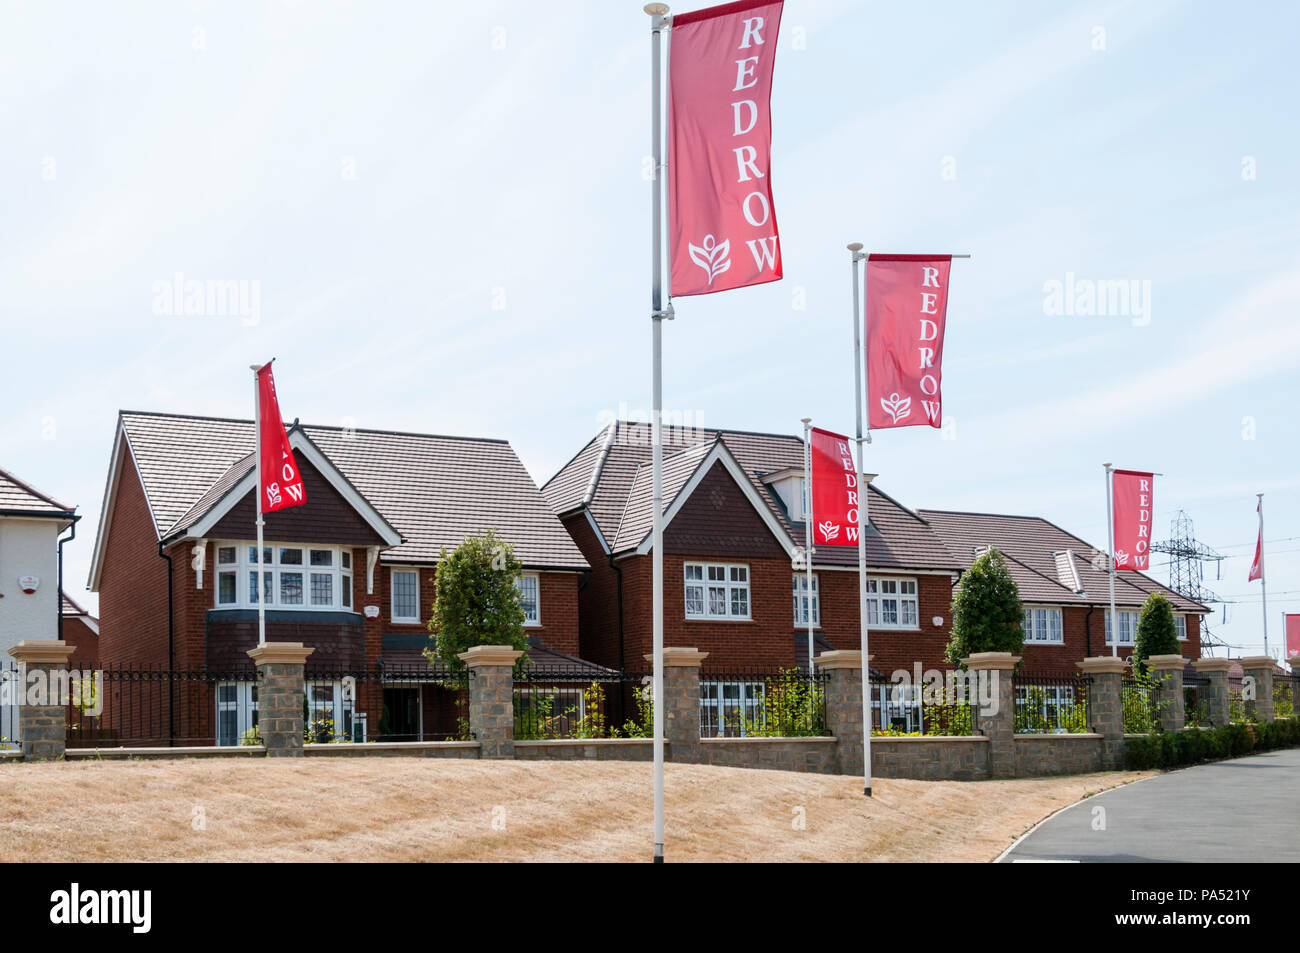 Show homes for housing by Redrow at Ebbsfleet Garden City in Kent. - Stock Image